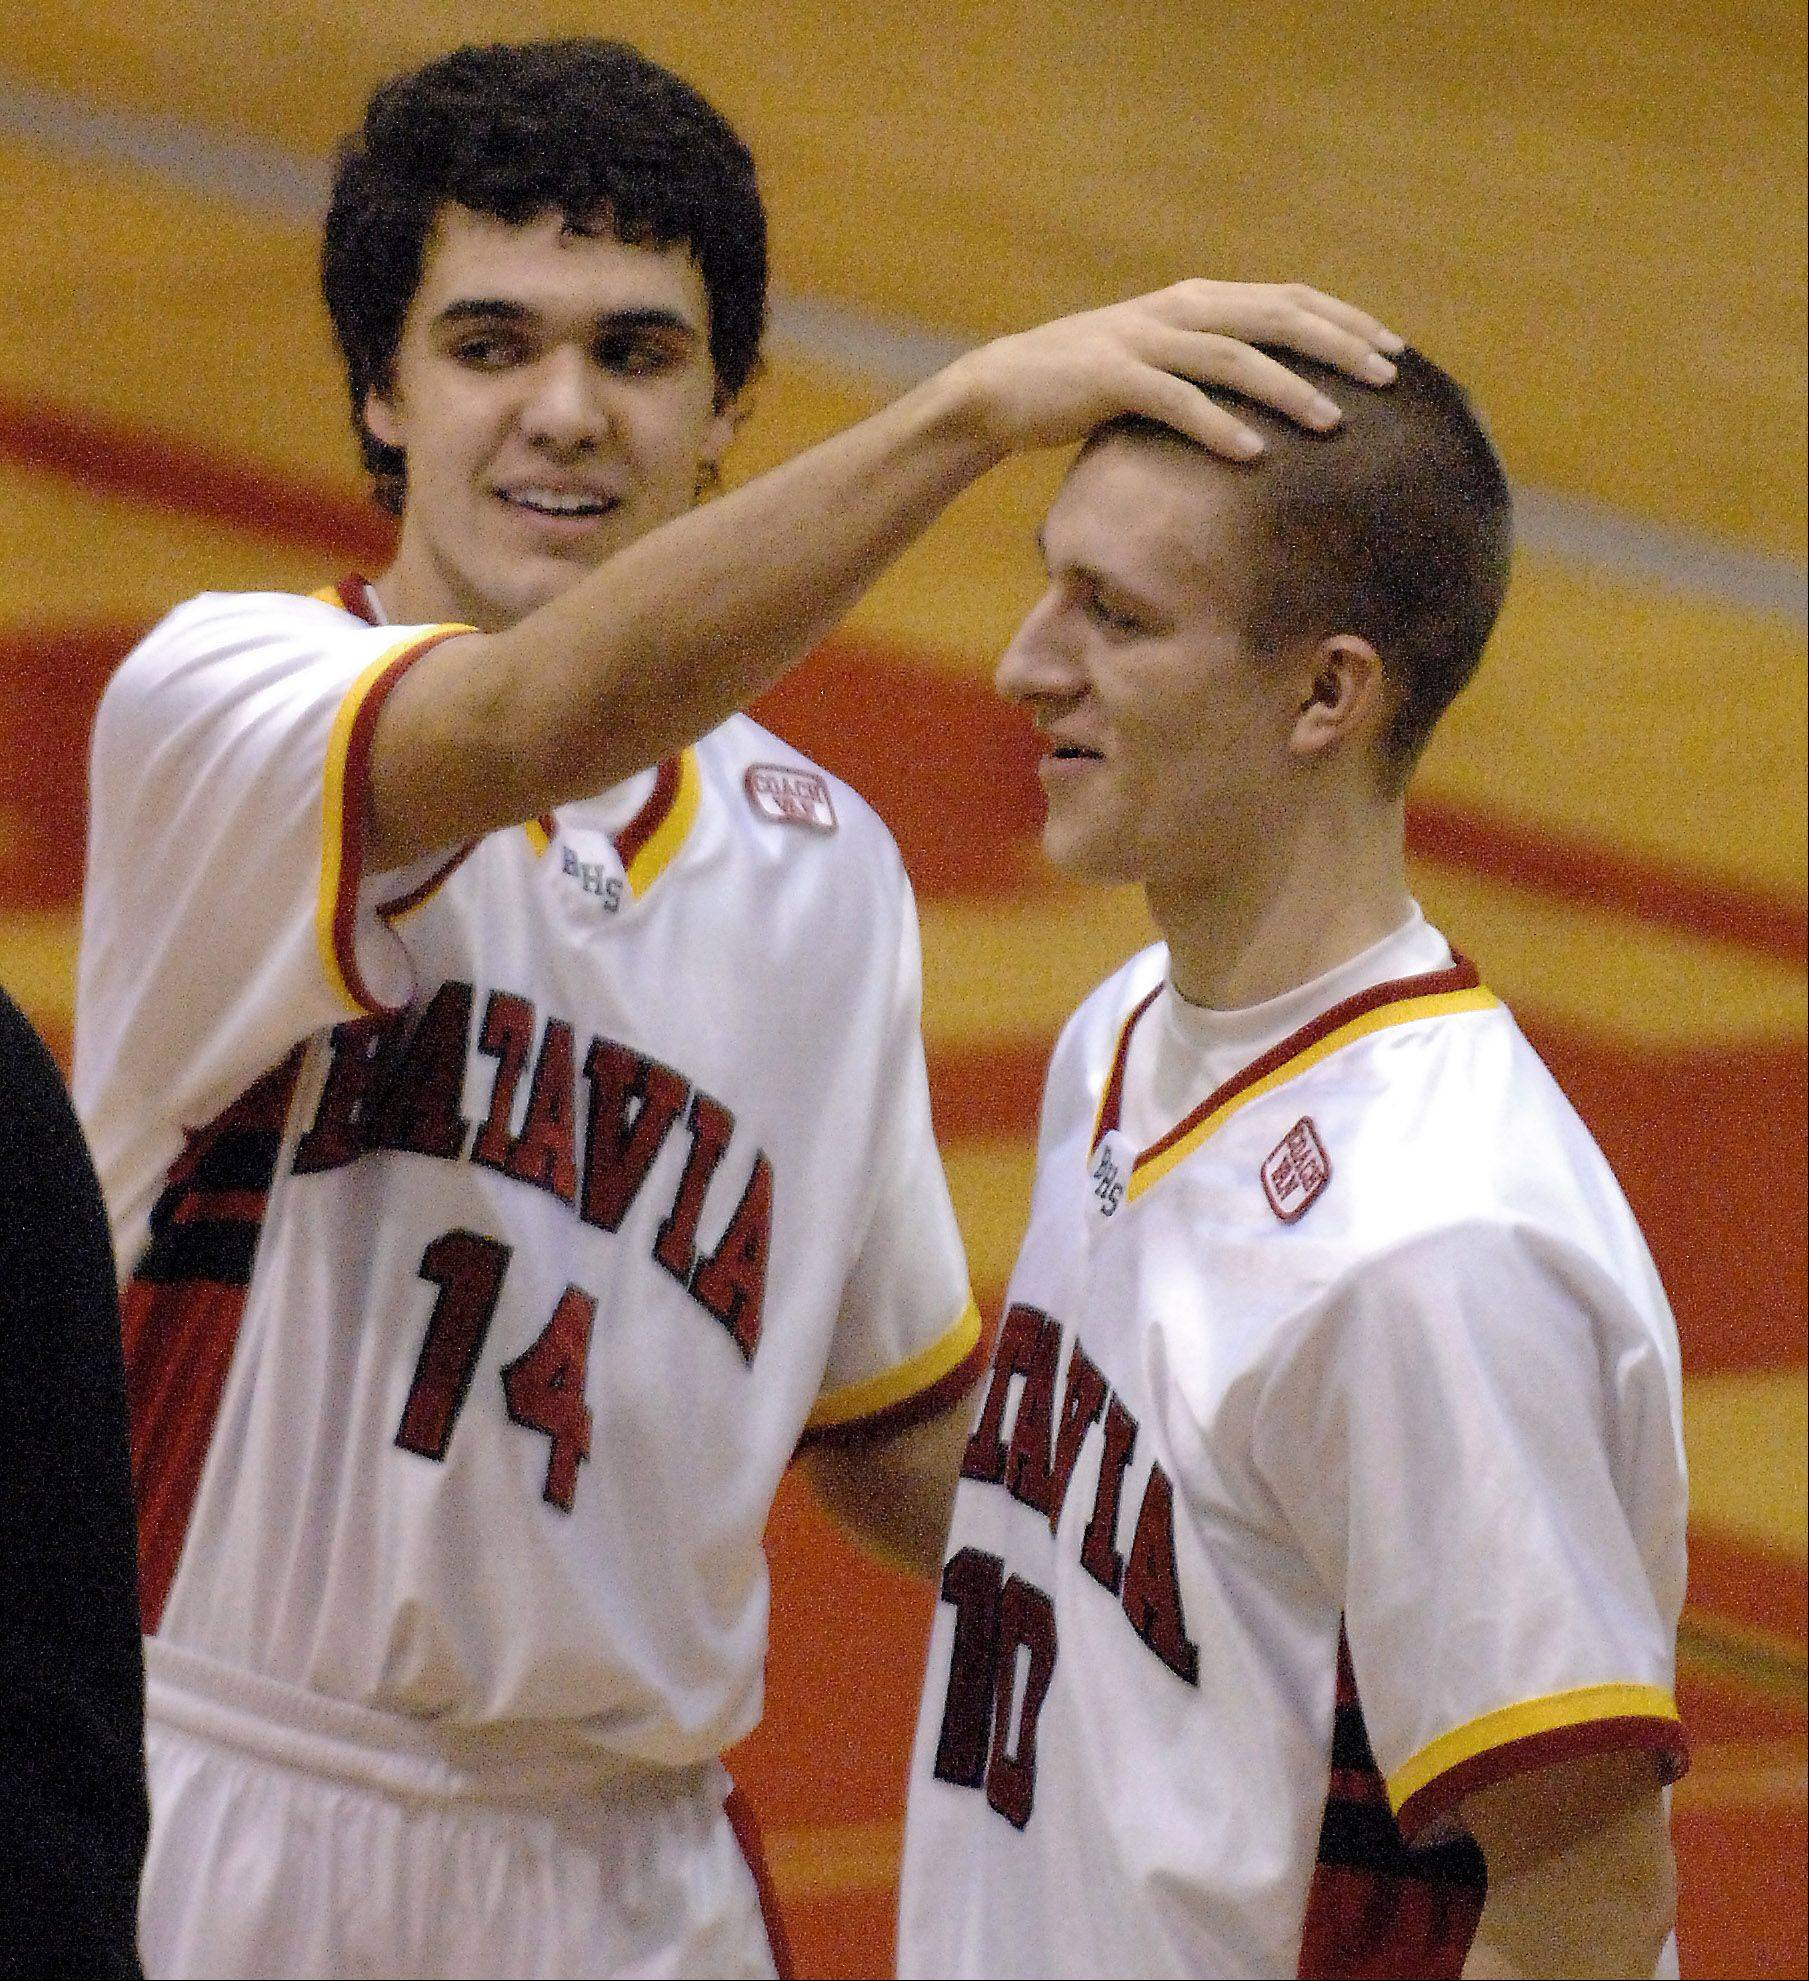 Batavia's Mike Rueffer gets a congratulatory pat on the head from teammate Micah Coffey after a win over Elgin .